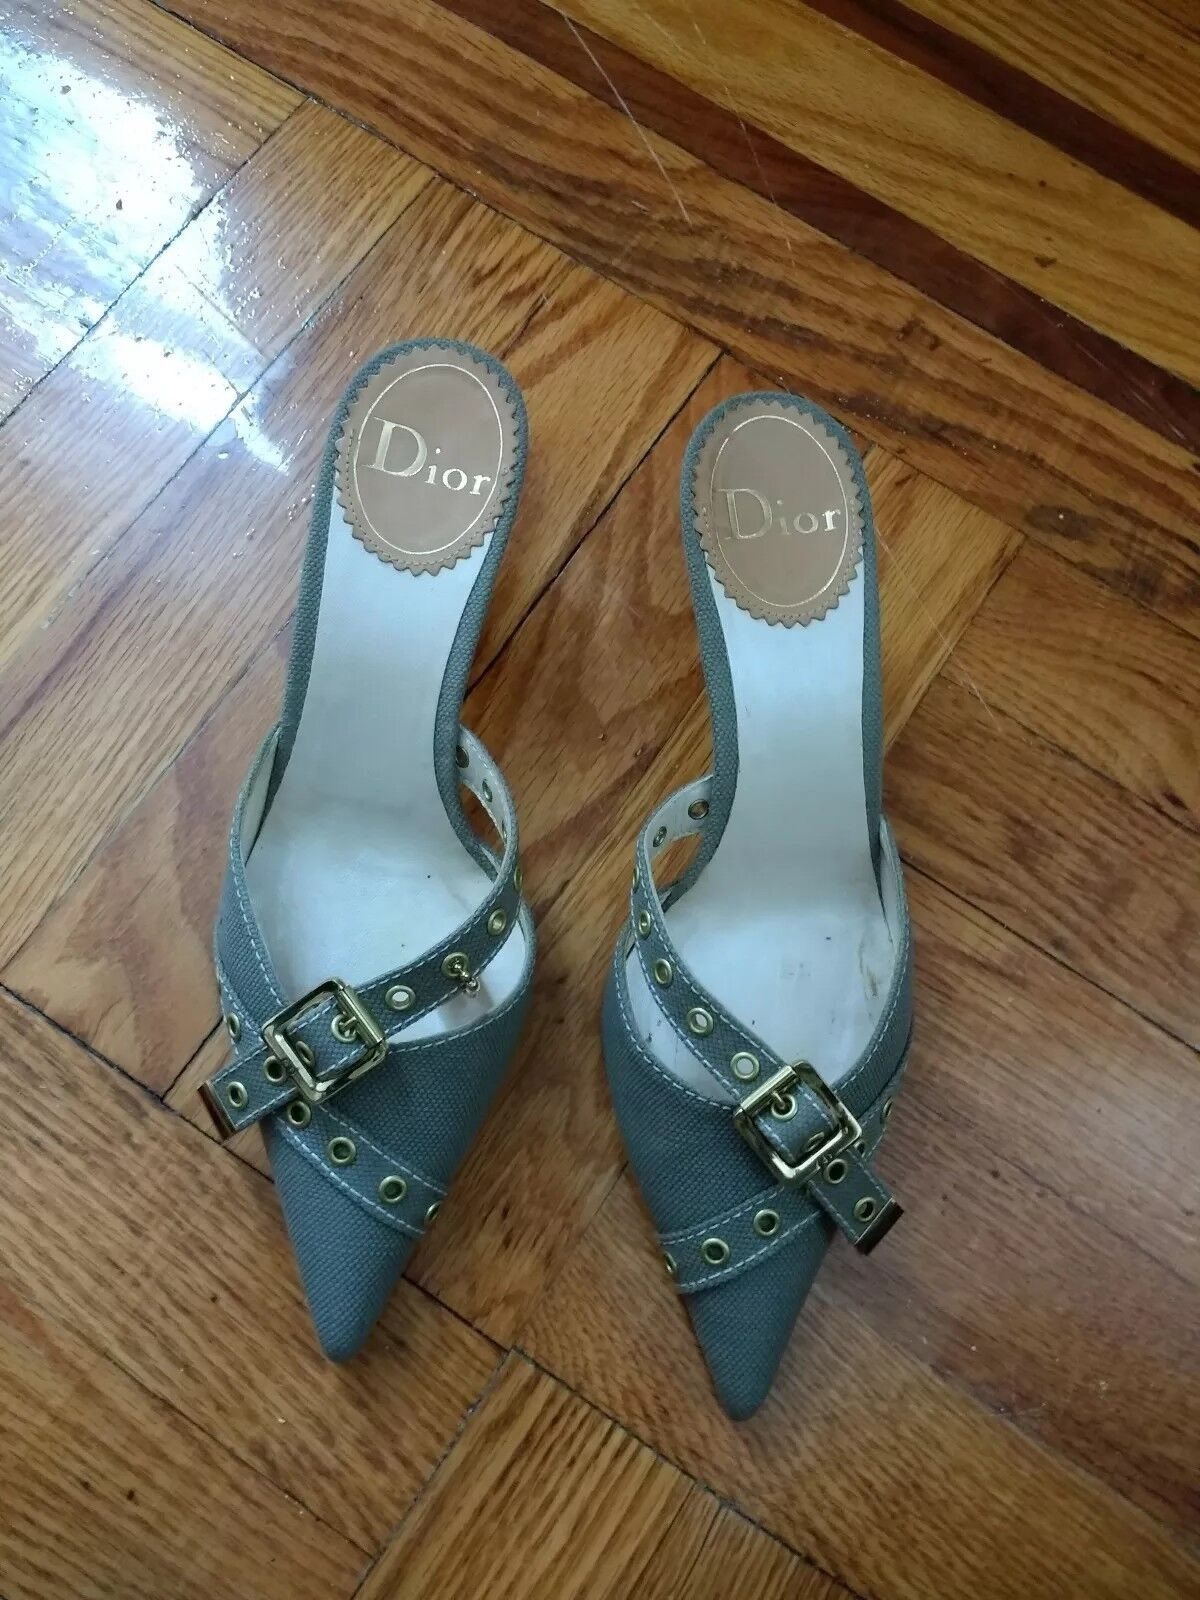 Christian Dior Dimensione 37.5 US 7, Canvas Canvas Canvas Sandals W Chained Logo 3f7742